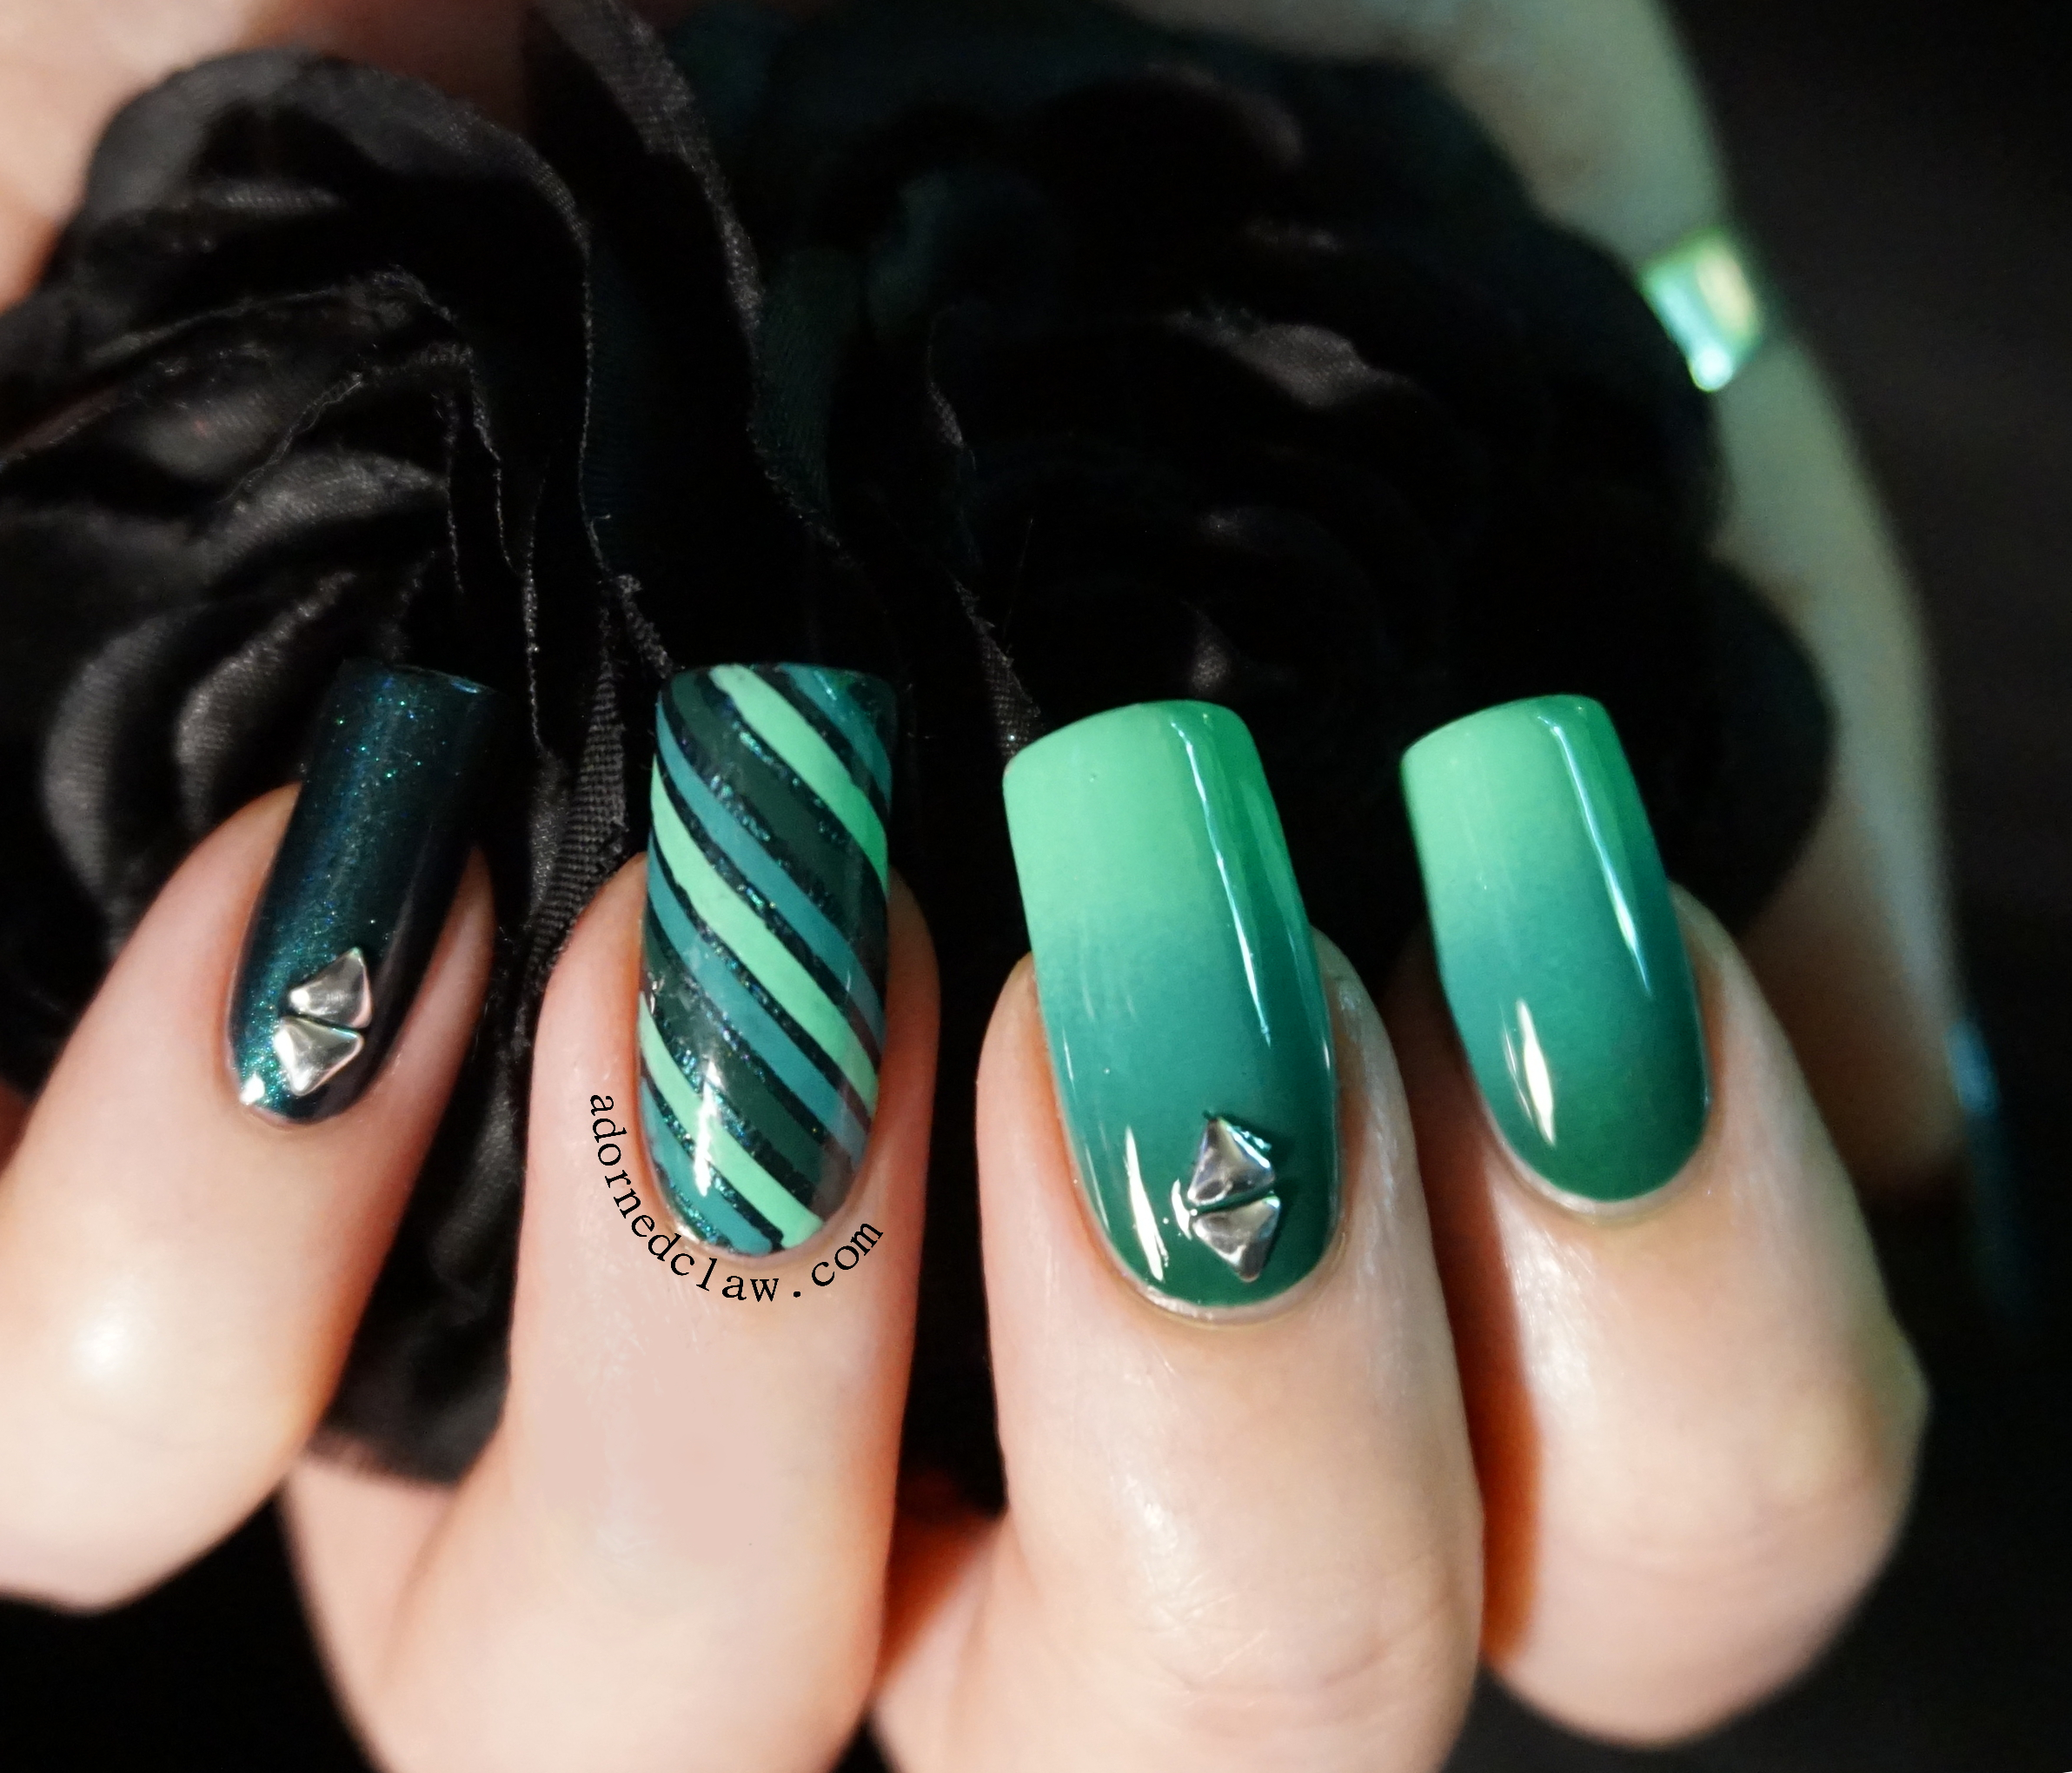 The adorned claw nail art page 2 teal nail art prinsesfo Image collections